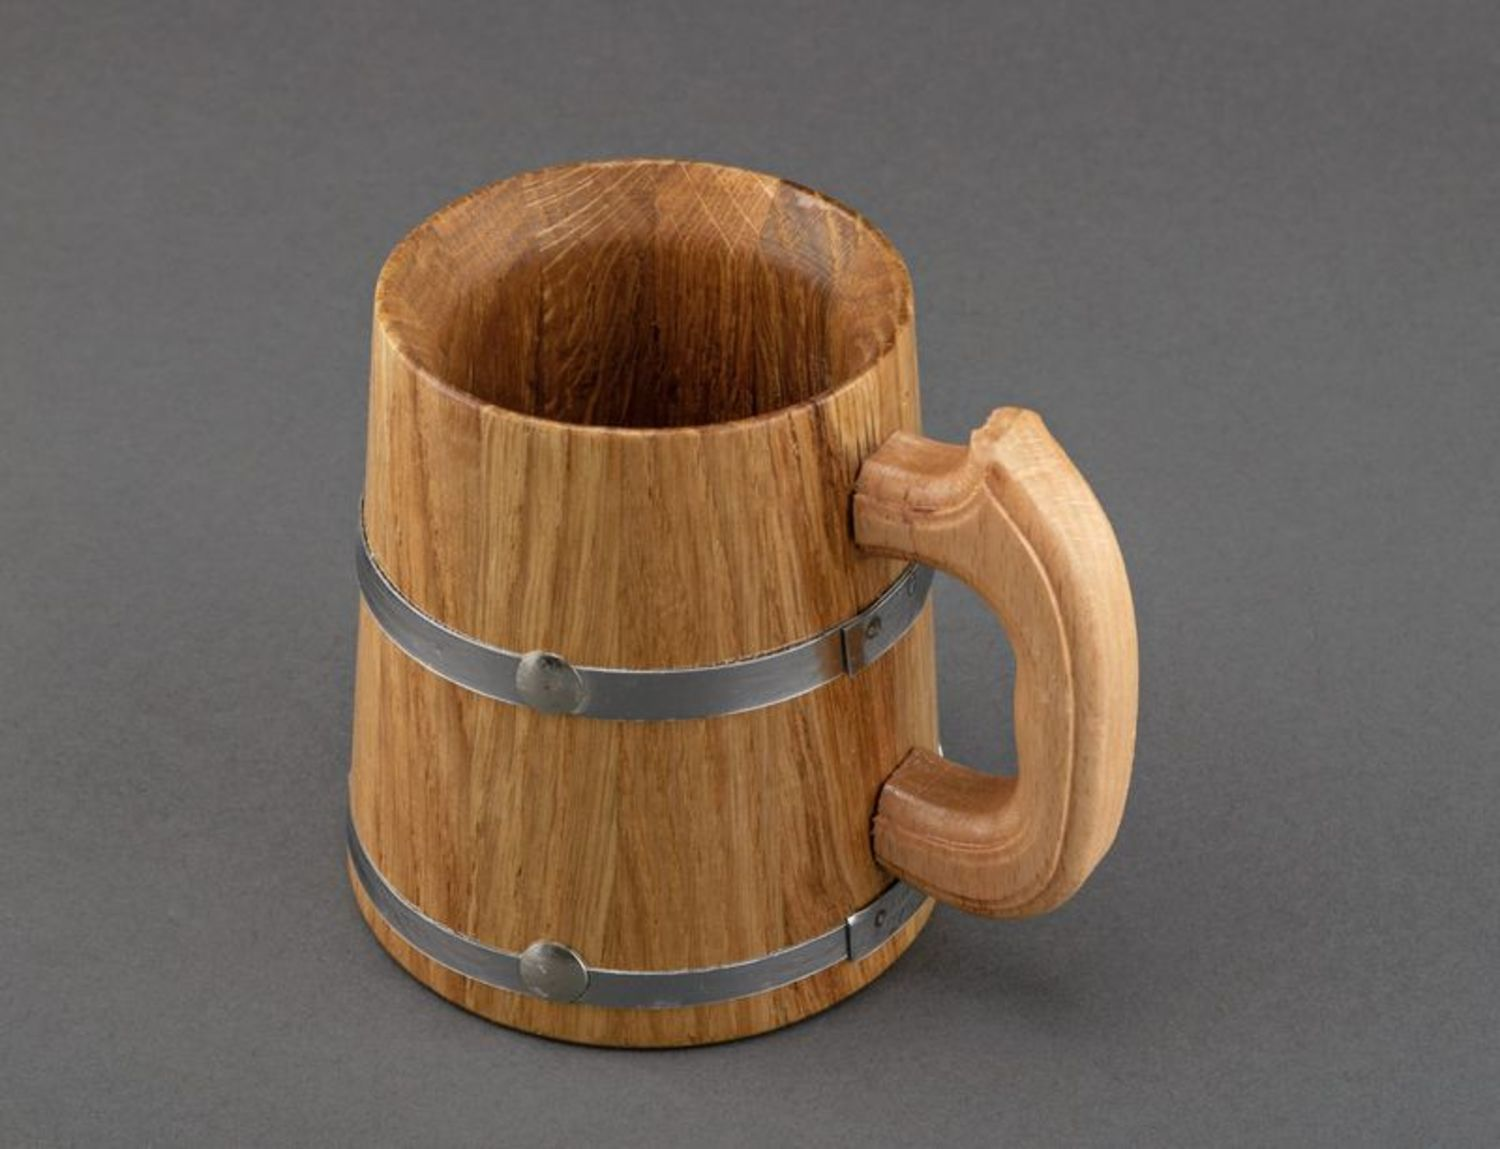 cups,glass Big wooden mug for decorative use only - MADEheart.com